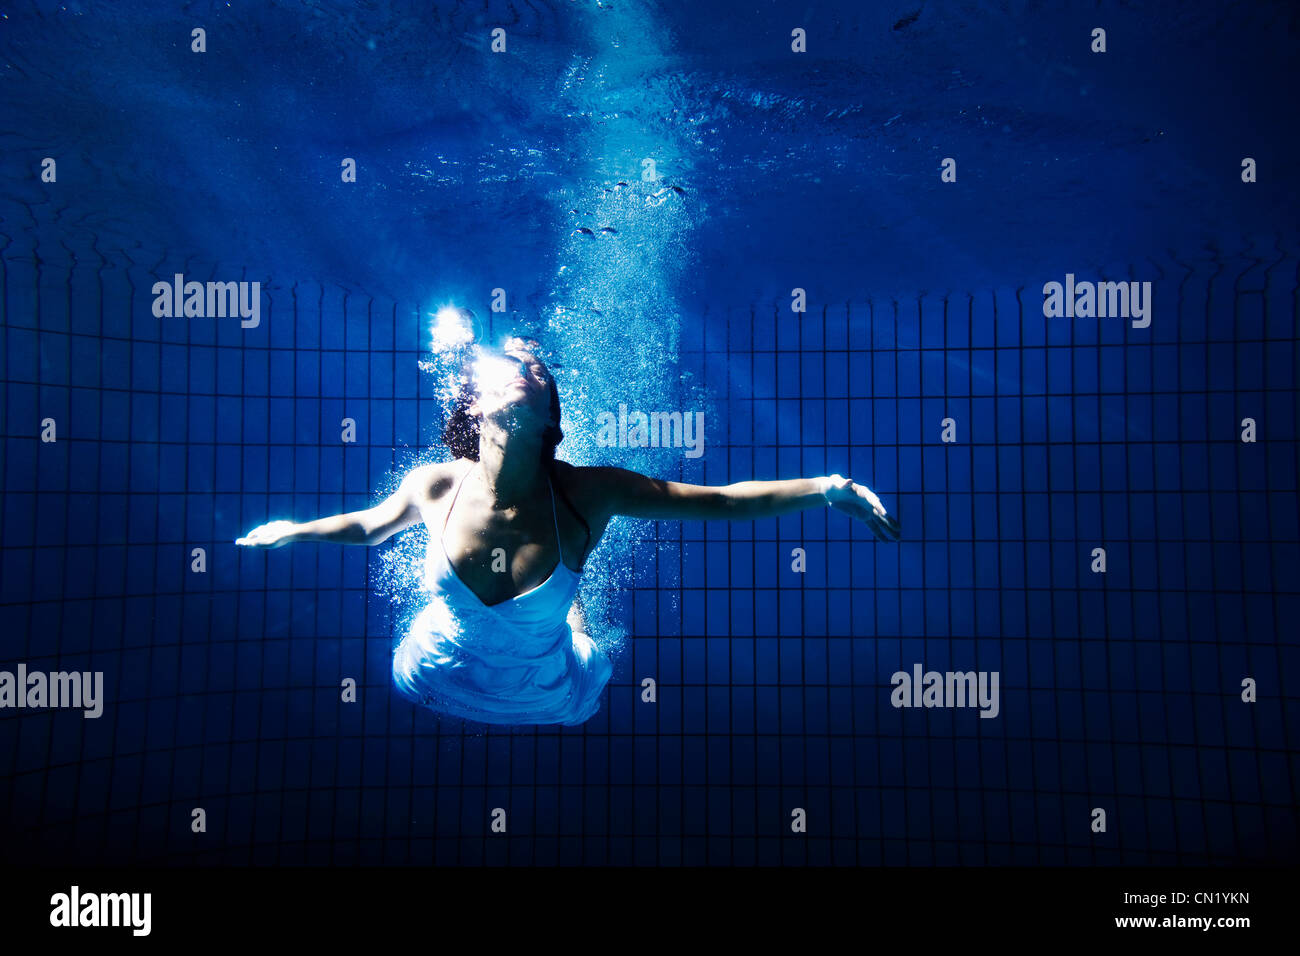 Woman in white dress underwater - Stock Image